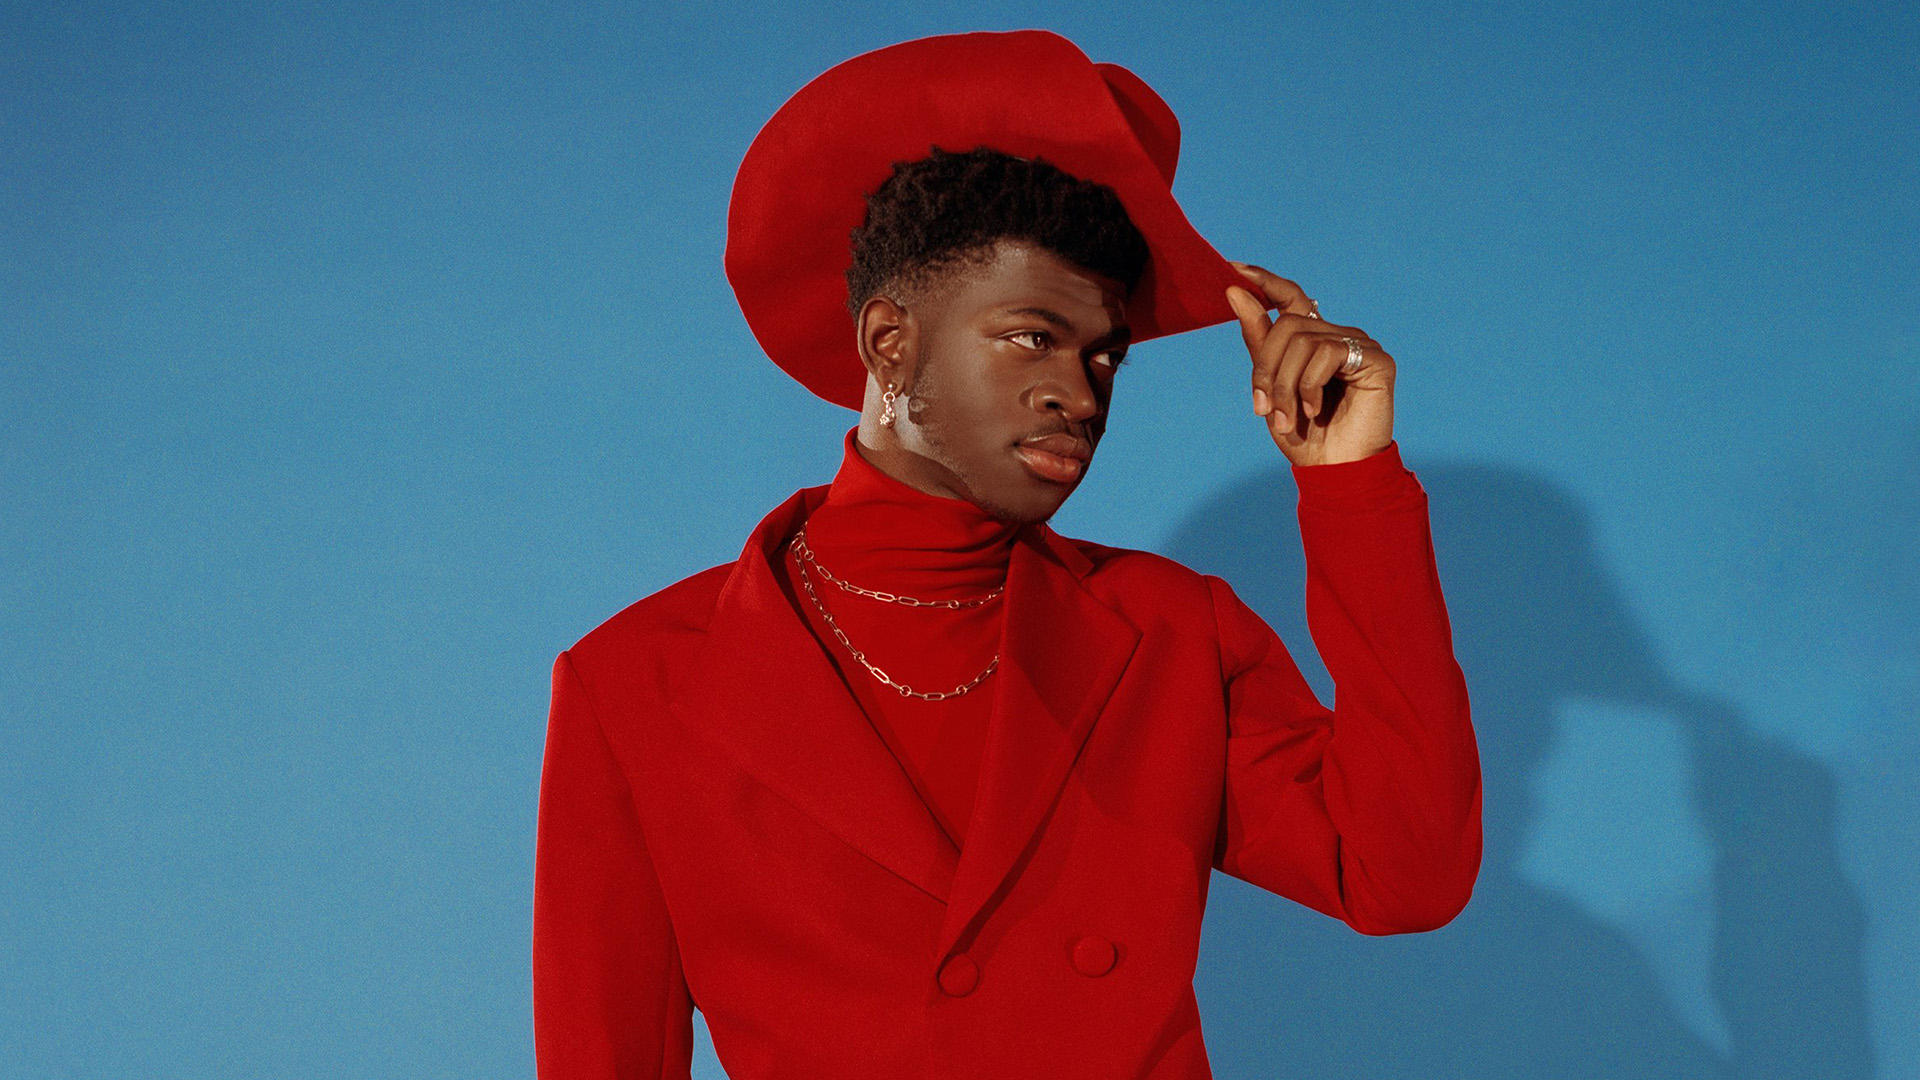 Rap e Country Music: Como Lil Nas X virou a Maior Promessa do POP?